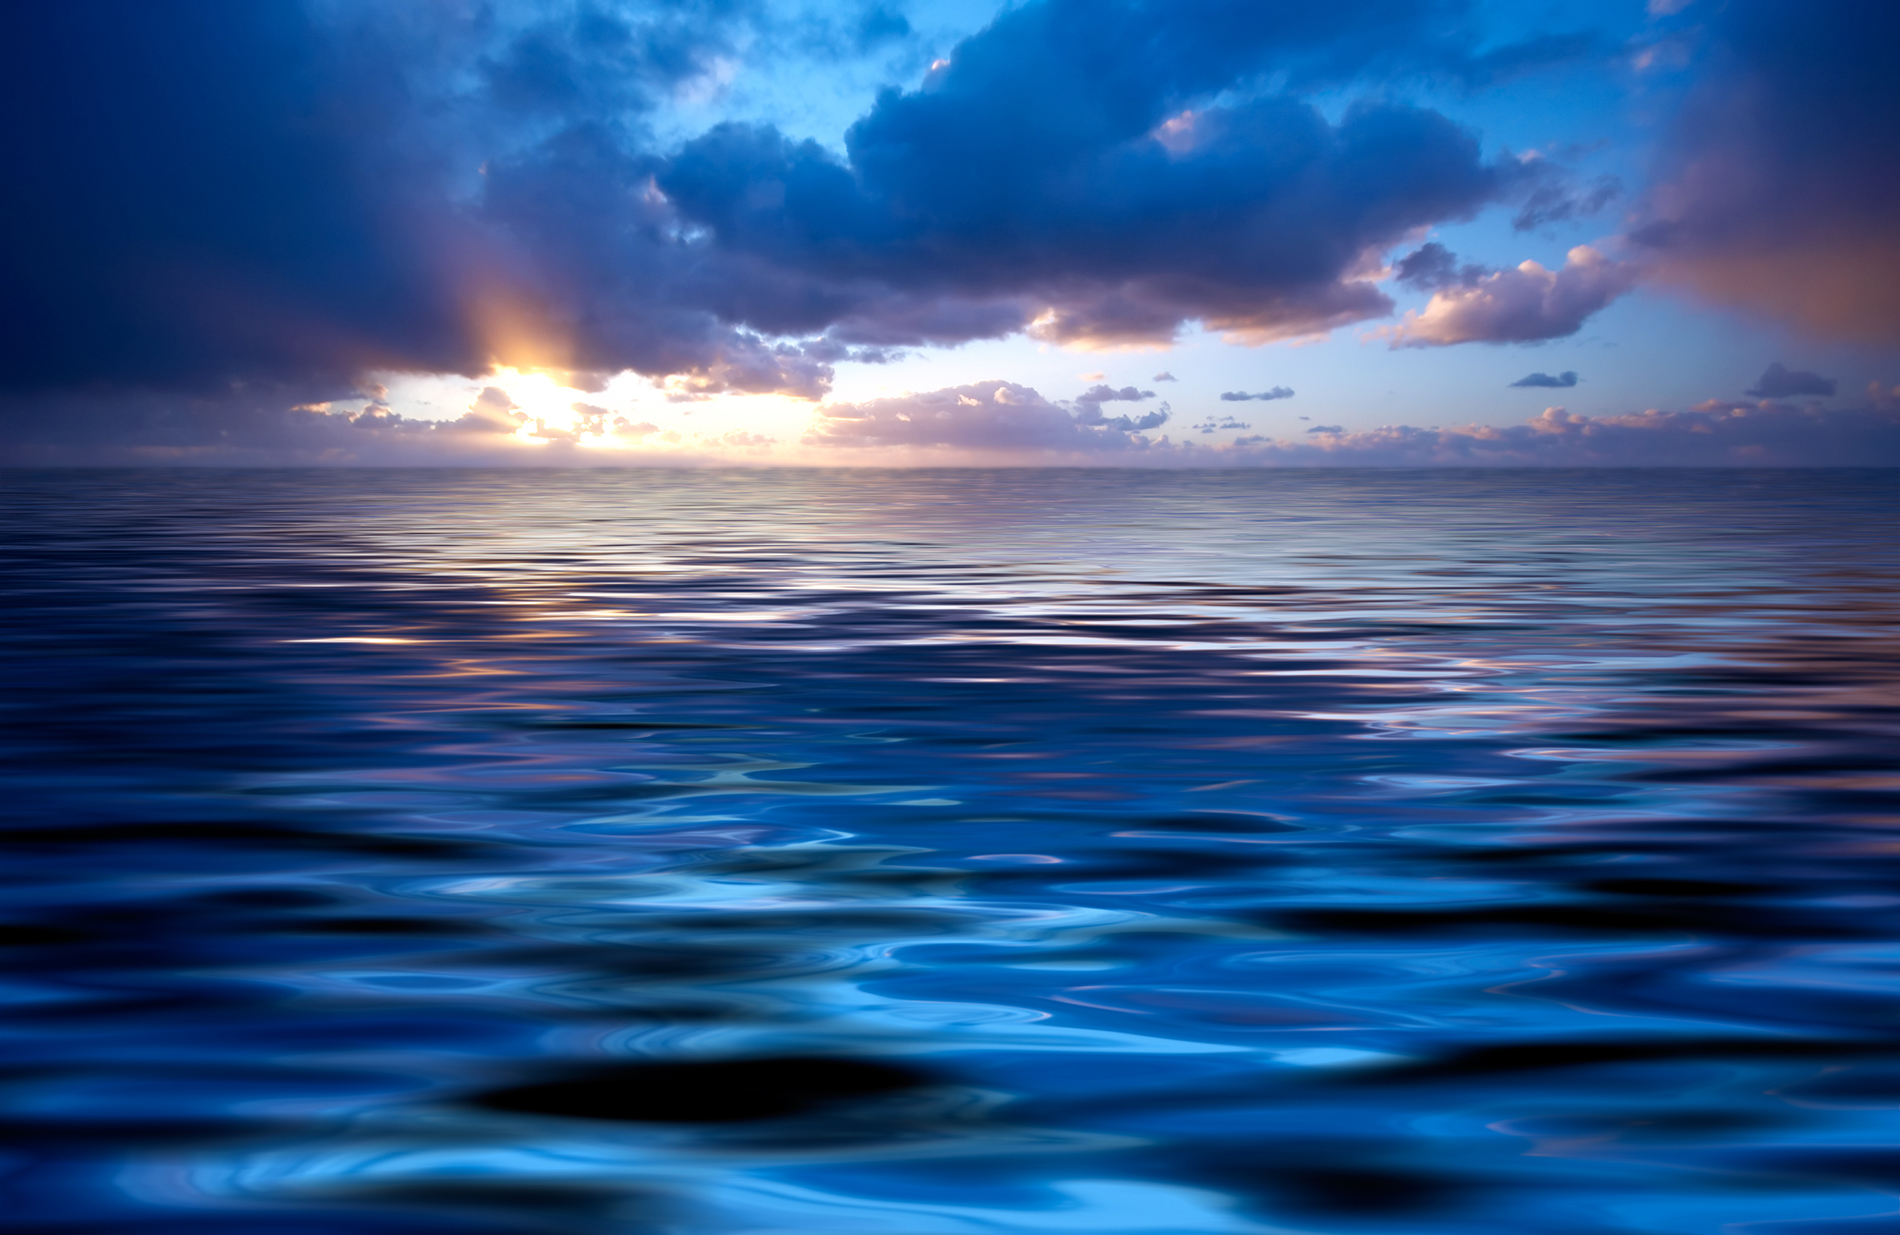 Cloud glow and calm sea surface  54080